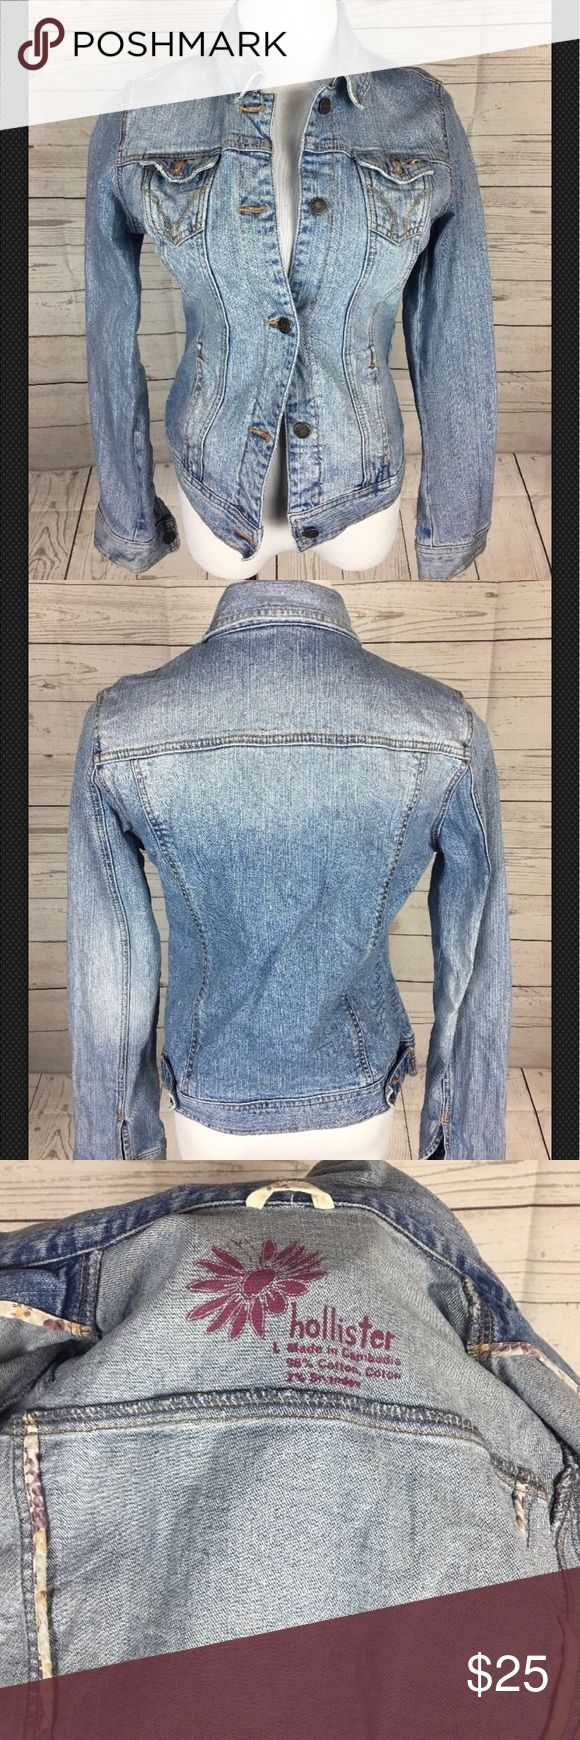 Hollister Jean Jacket size large Preowned Hollister Jean jacket size large. Perfect for spring Hollister Jackets & Coats Jean Jackets